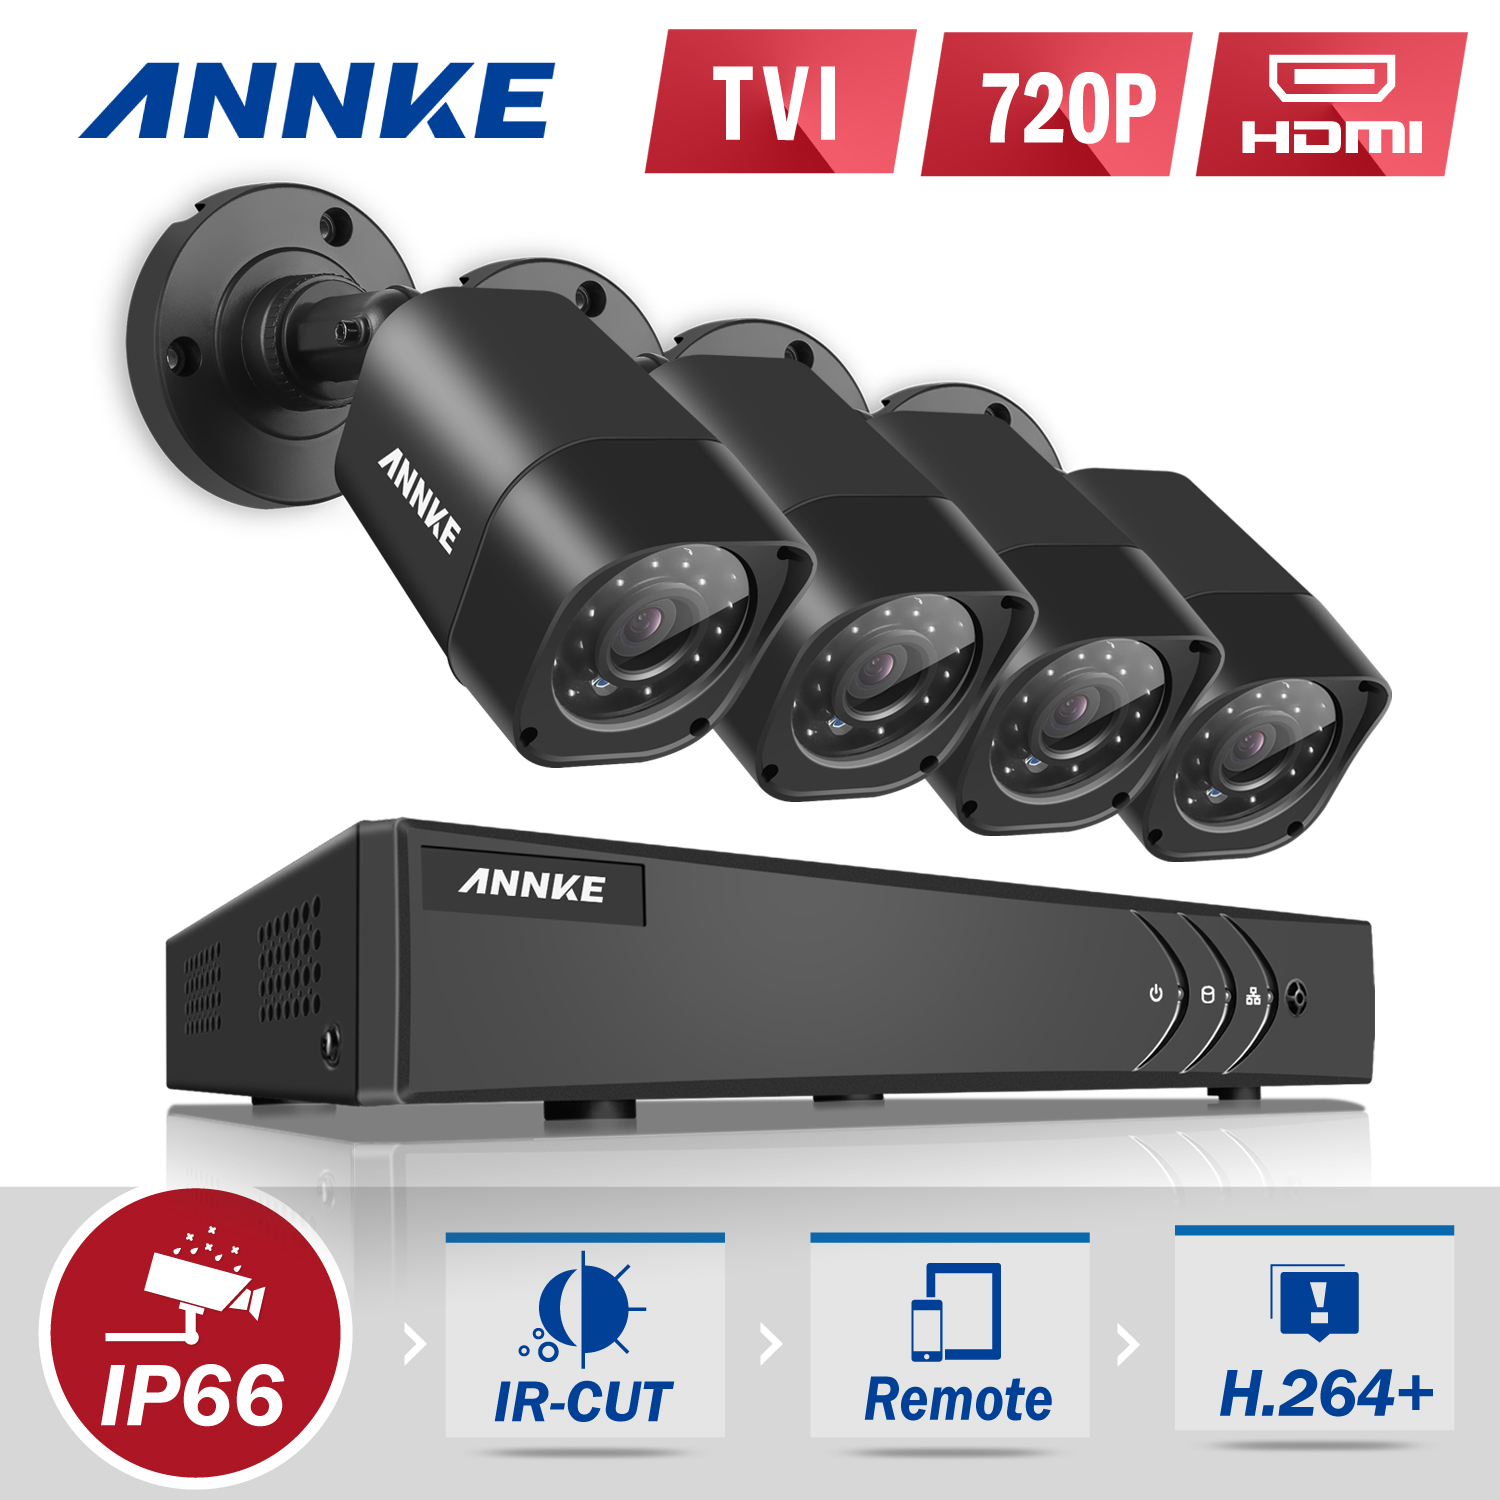 Annke 8-Channel HD-TVI 1080P Lite Video Security System DVR and 4 Weatherproof Indoor/Outdoor Cameras IR Cut Night Vision(0-NO HDD,1-1TB HDD)